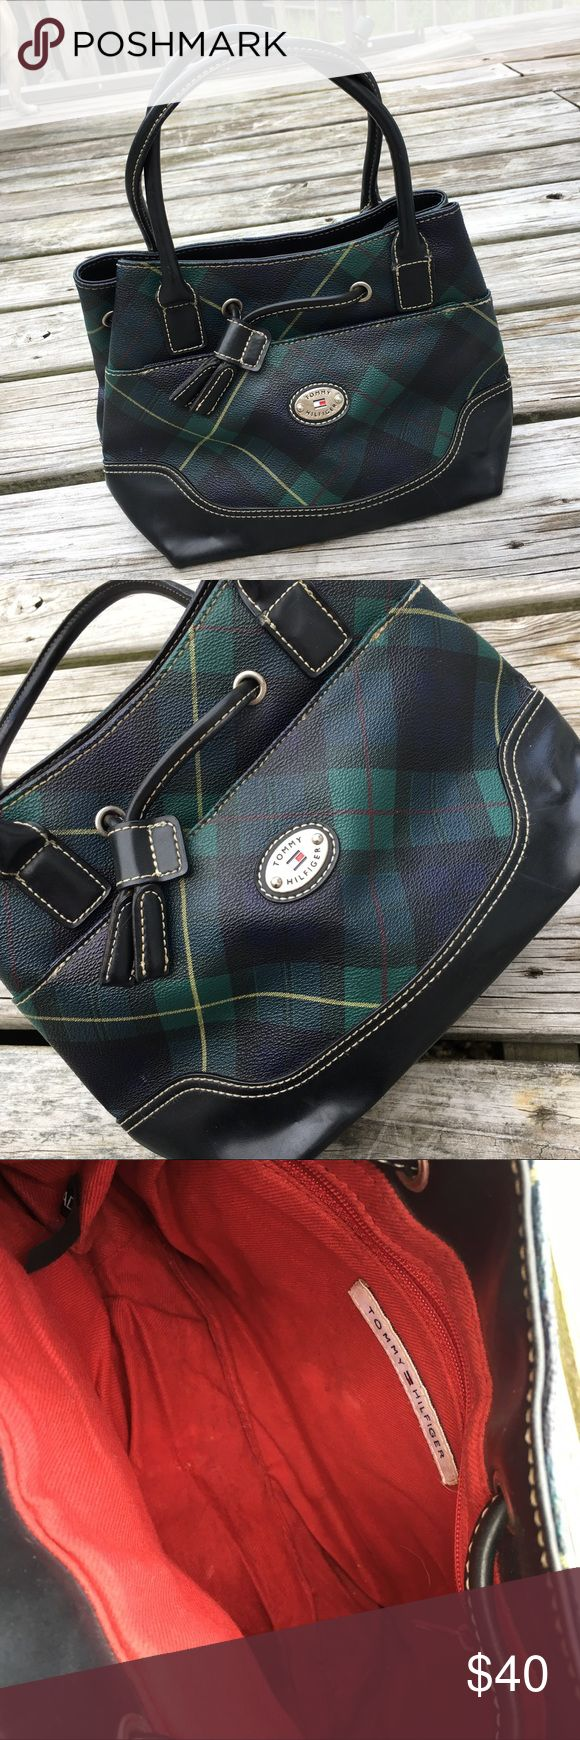 "TOMMY HILFIGER SATCHEL PURSE SHOULDER BAG HANDBAG! Vintage Vtg Retro Mid-Late 90's Y2K Era PERFECT Cute Sexy Dark Green / Dark Blue / Yellow / Dark Red / Black Leather Tommy Hilfiger Tarten Plaid Checker Checkered Unique Textured Small Mini Satchel Tote Handbag Bag Purse || Brand new || Never used || NO major flaws. Many years old. Minor agewear- light scuffs, marks blemishes, etc. Nothing serious. Overall excellent condition! || Approx. 12"" at widest point x 8"" tall x 5.5"" deep 